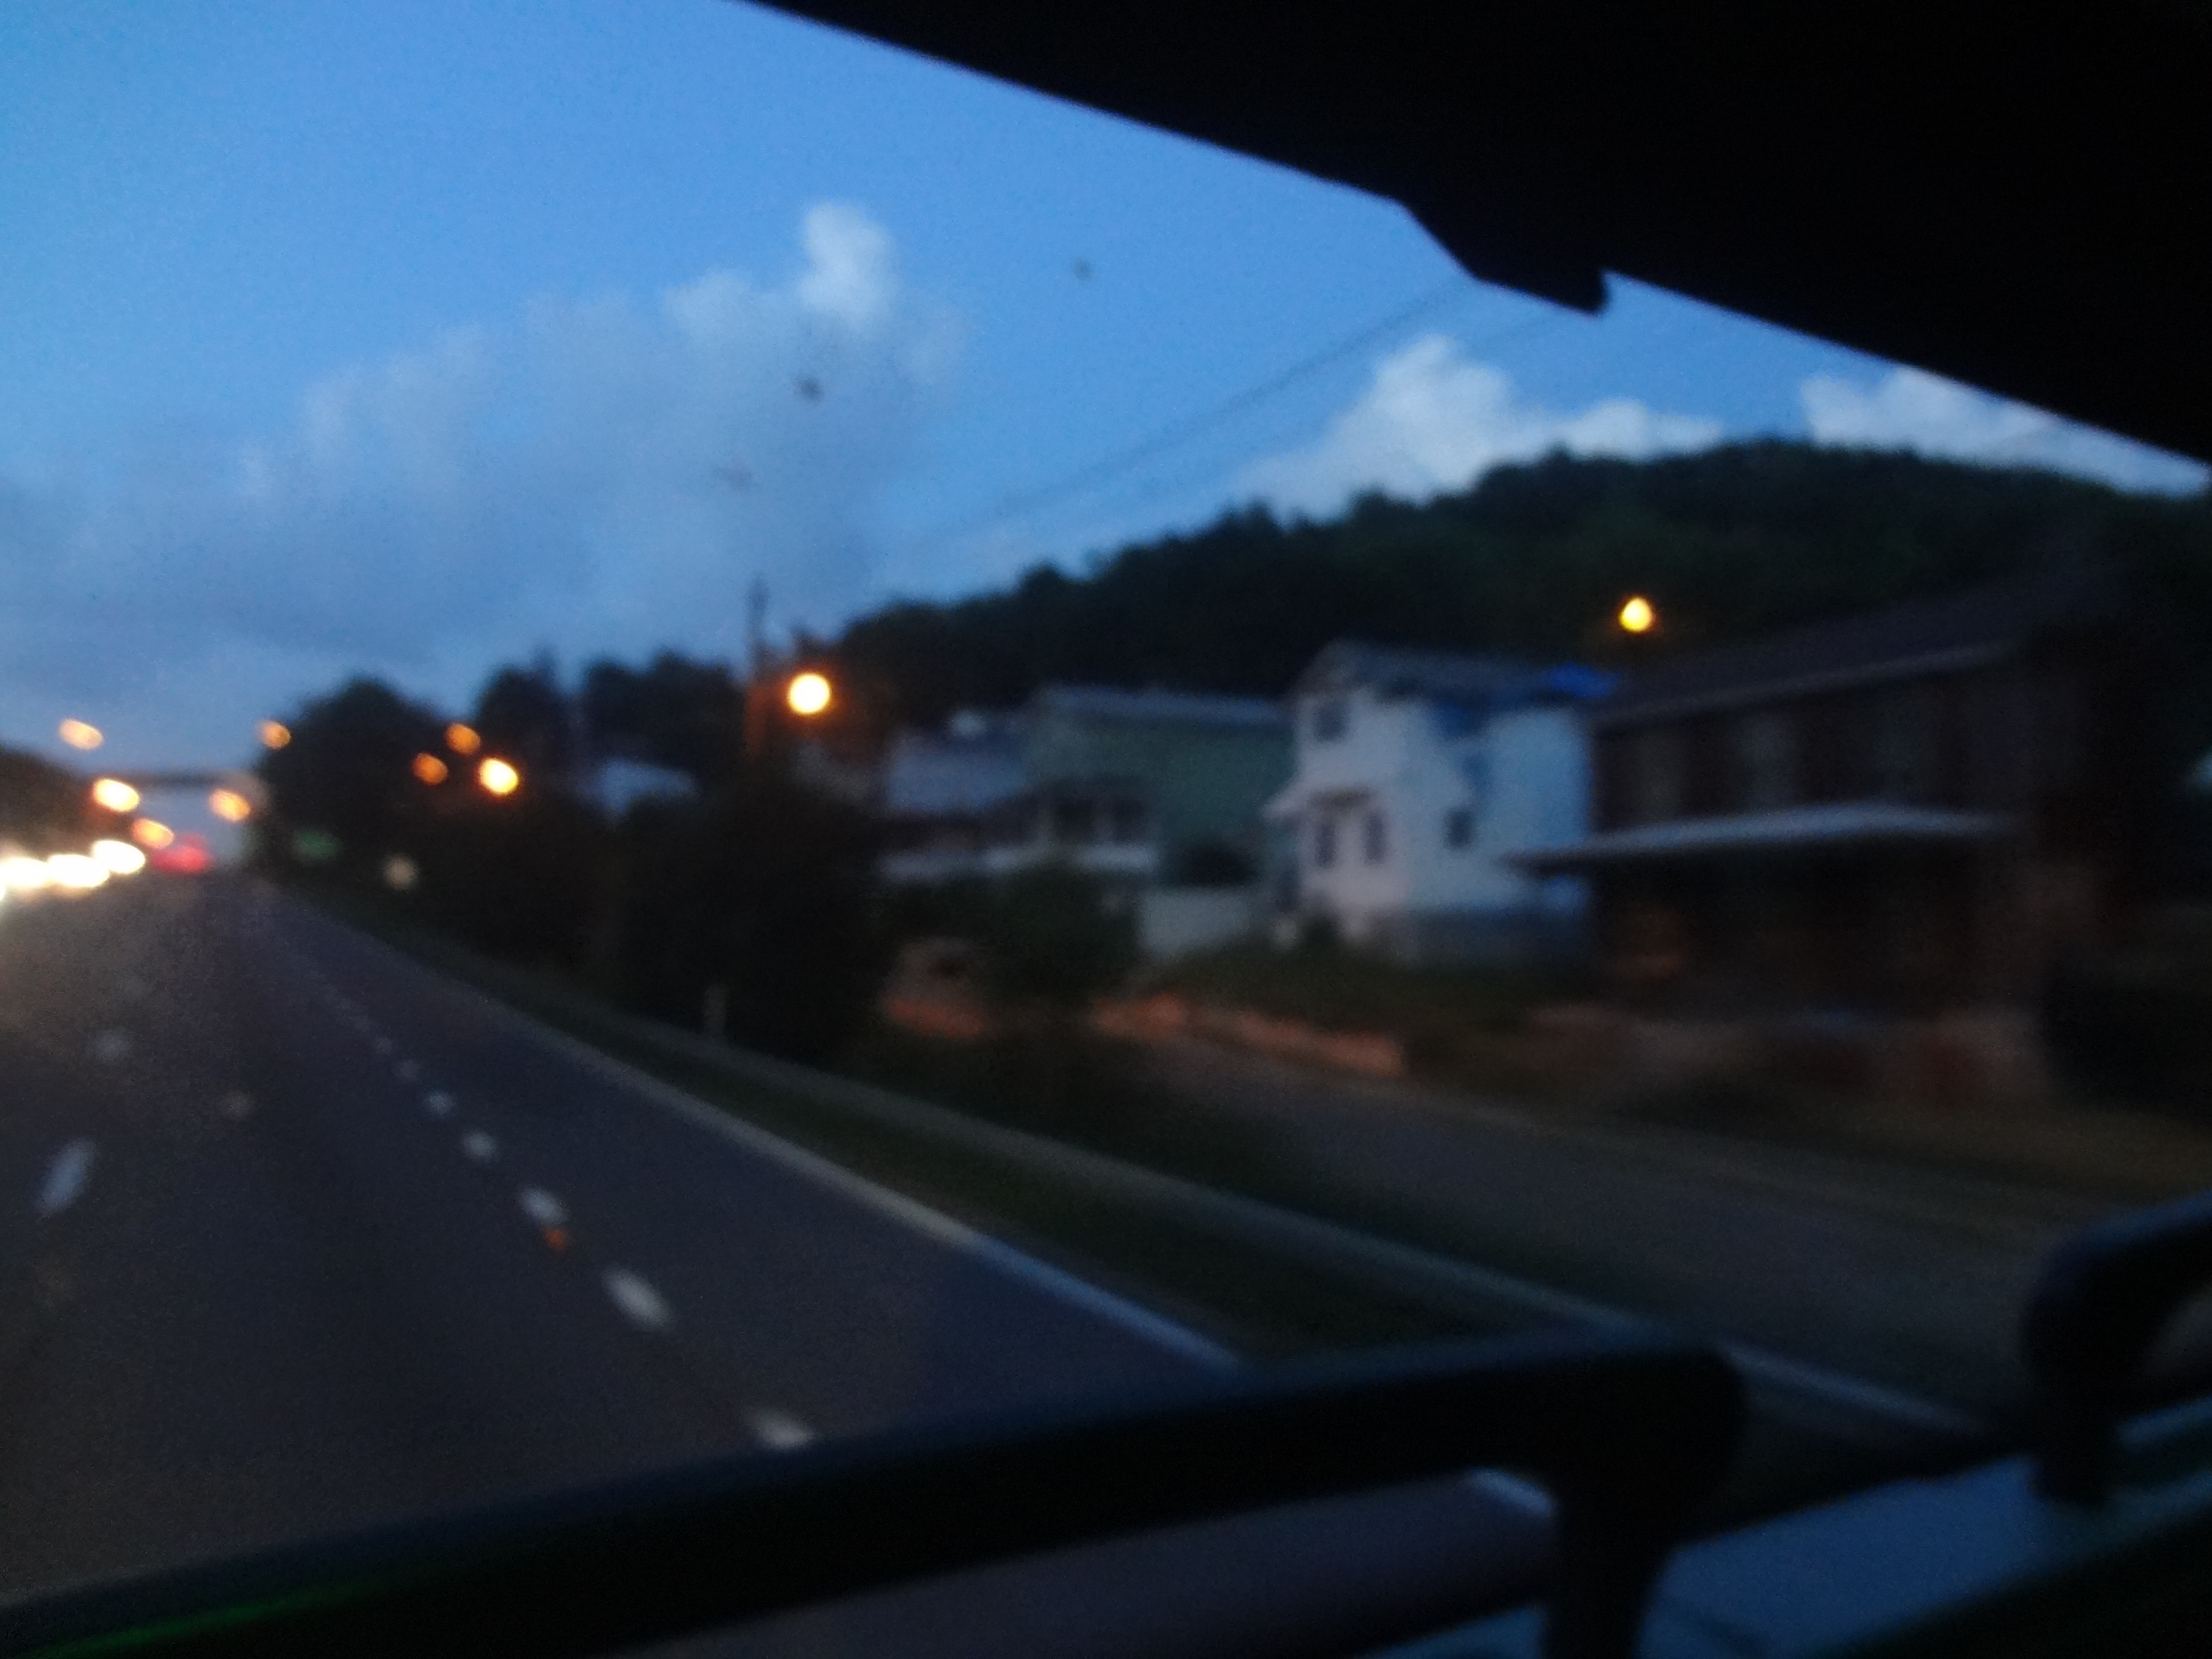 Going to Washington by bus